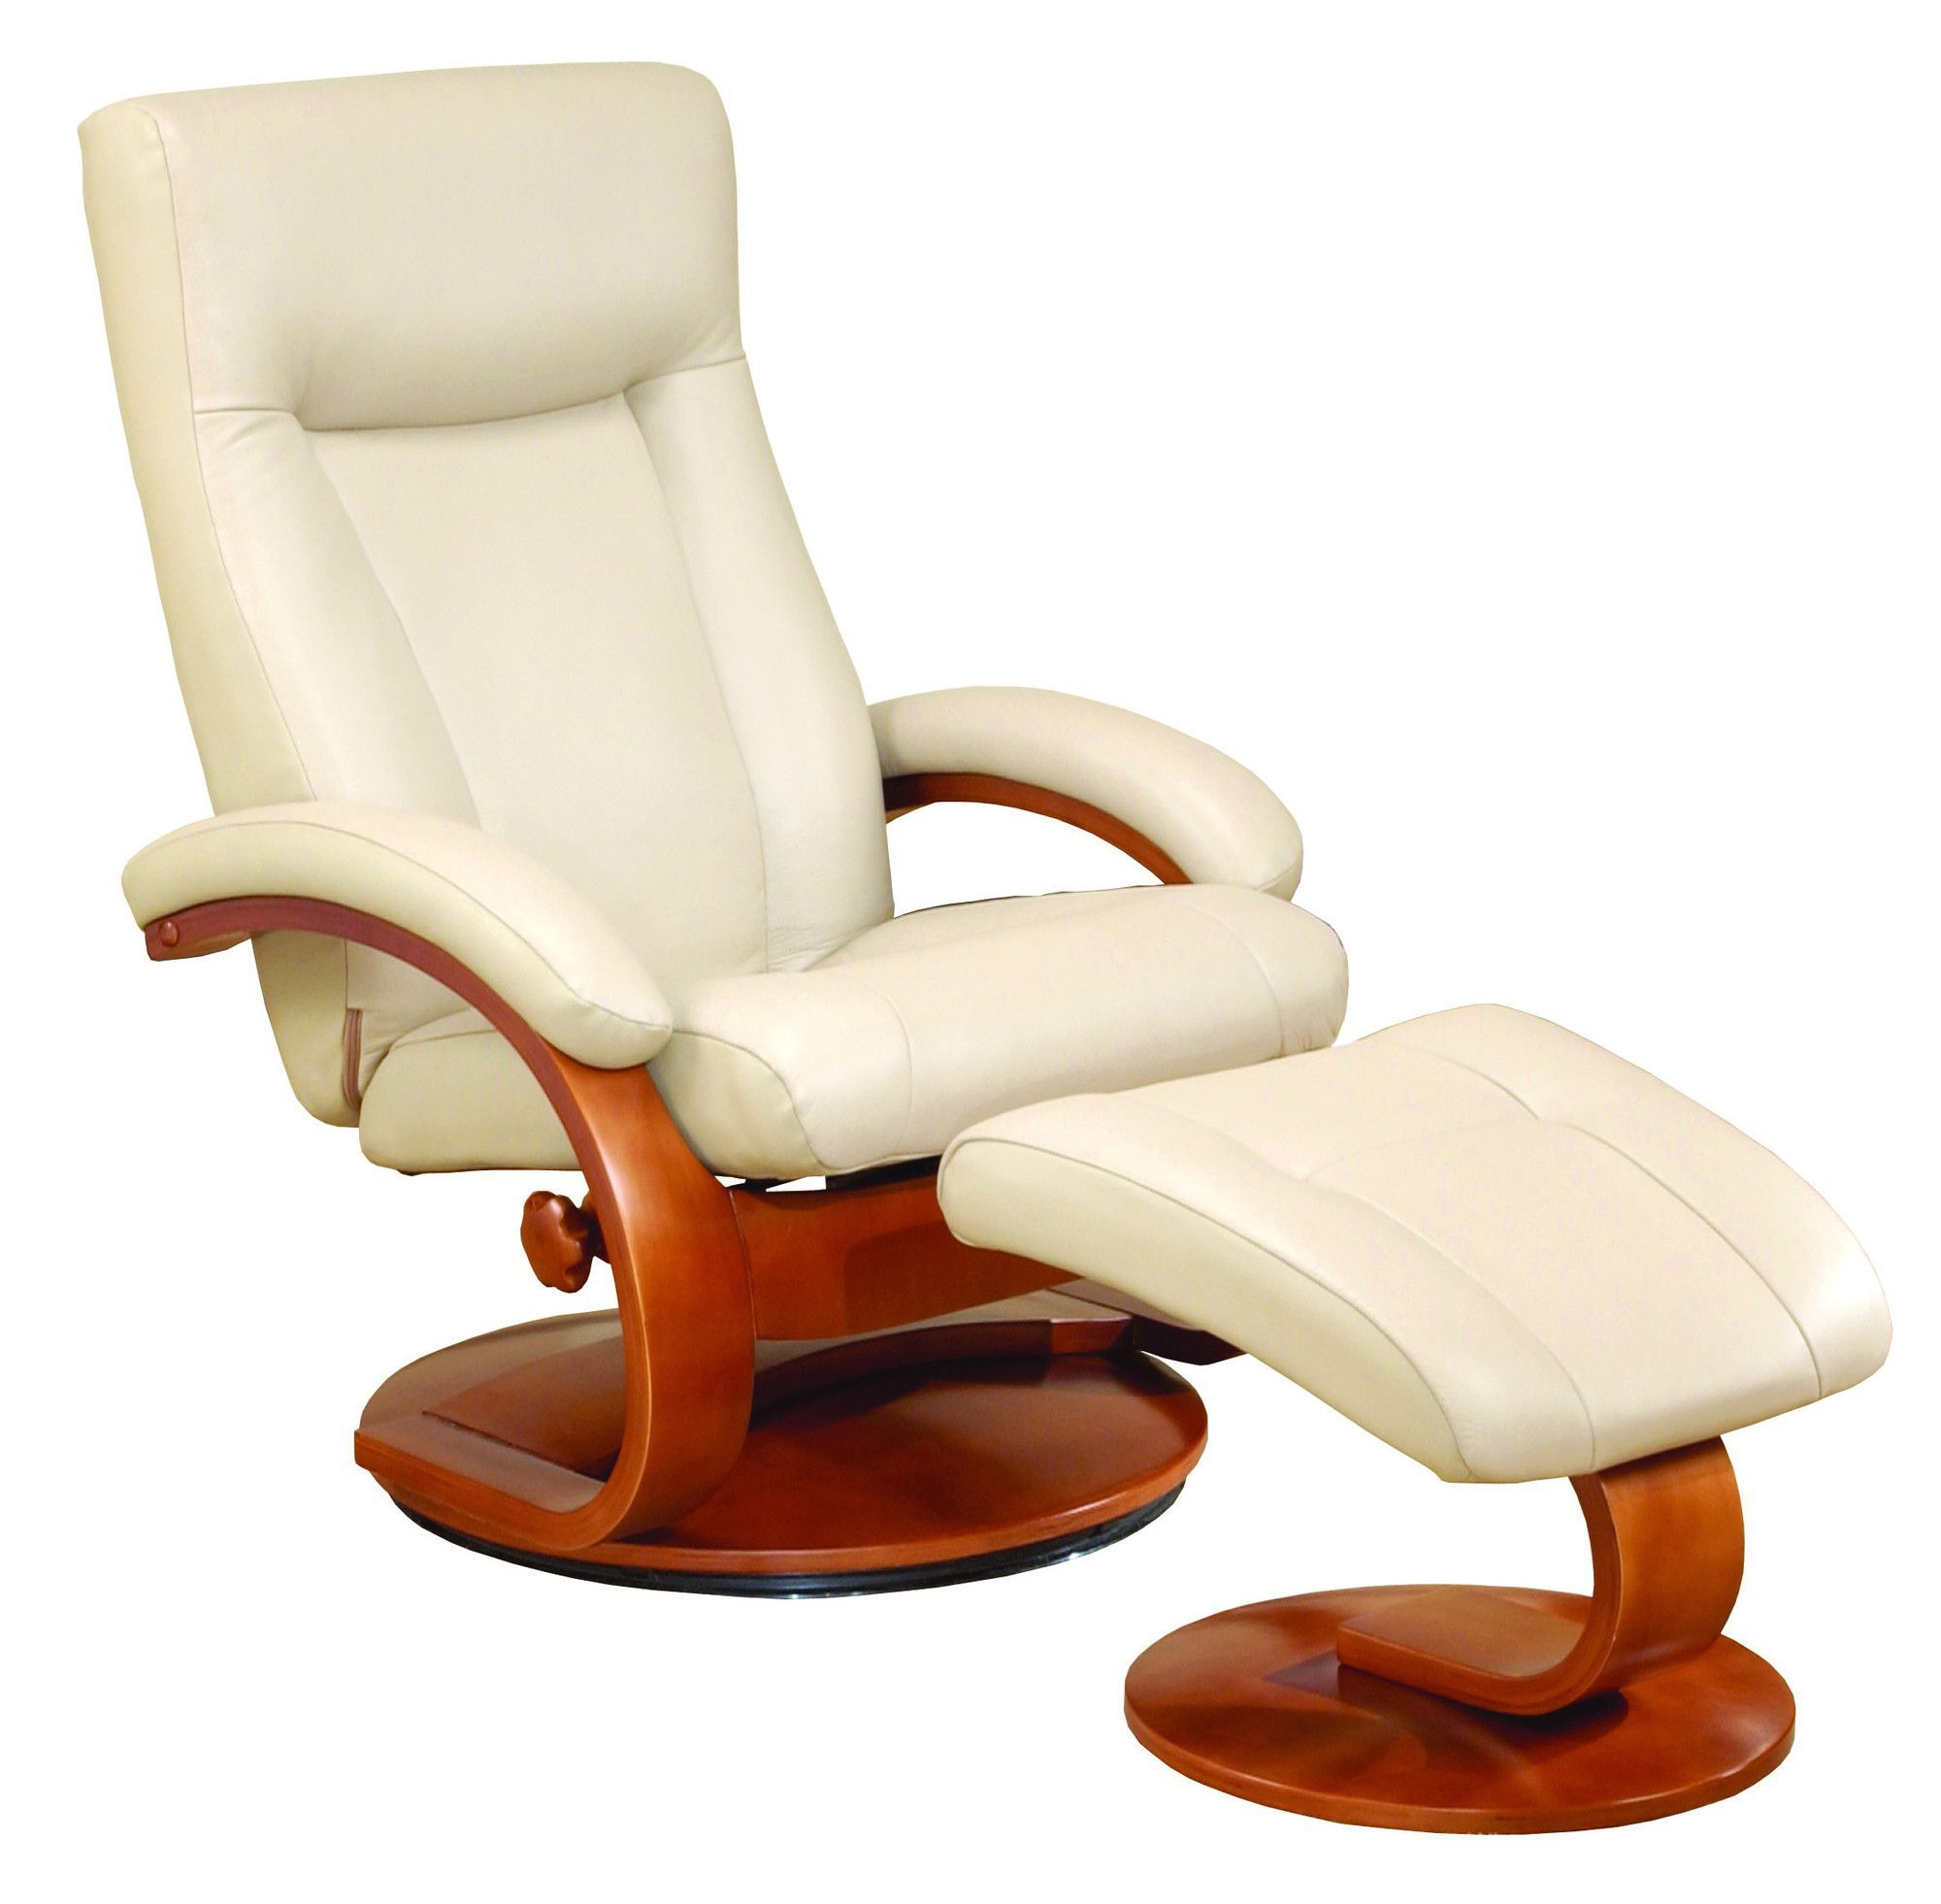 Wingler Manual Recliner Recliner With Ottoman Leather Chair